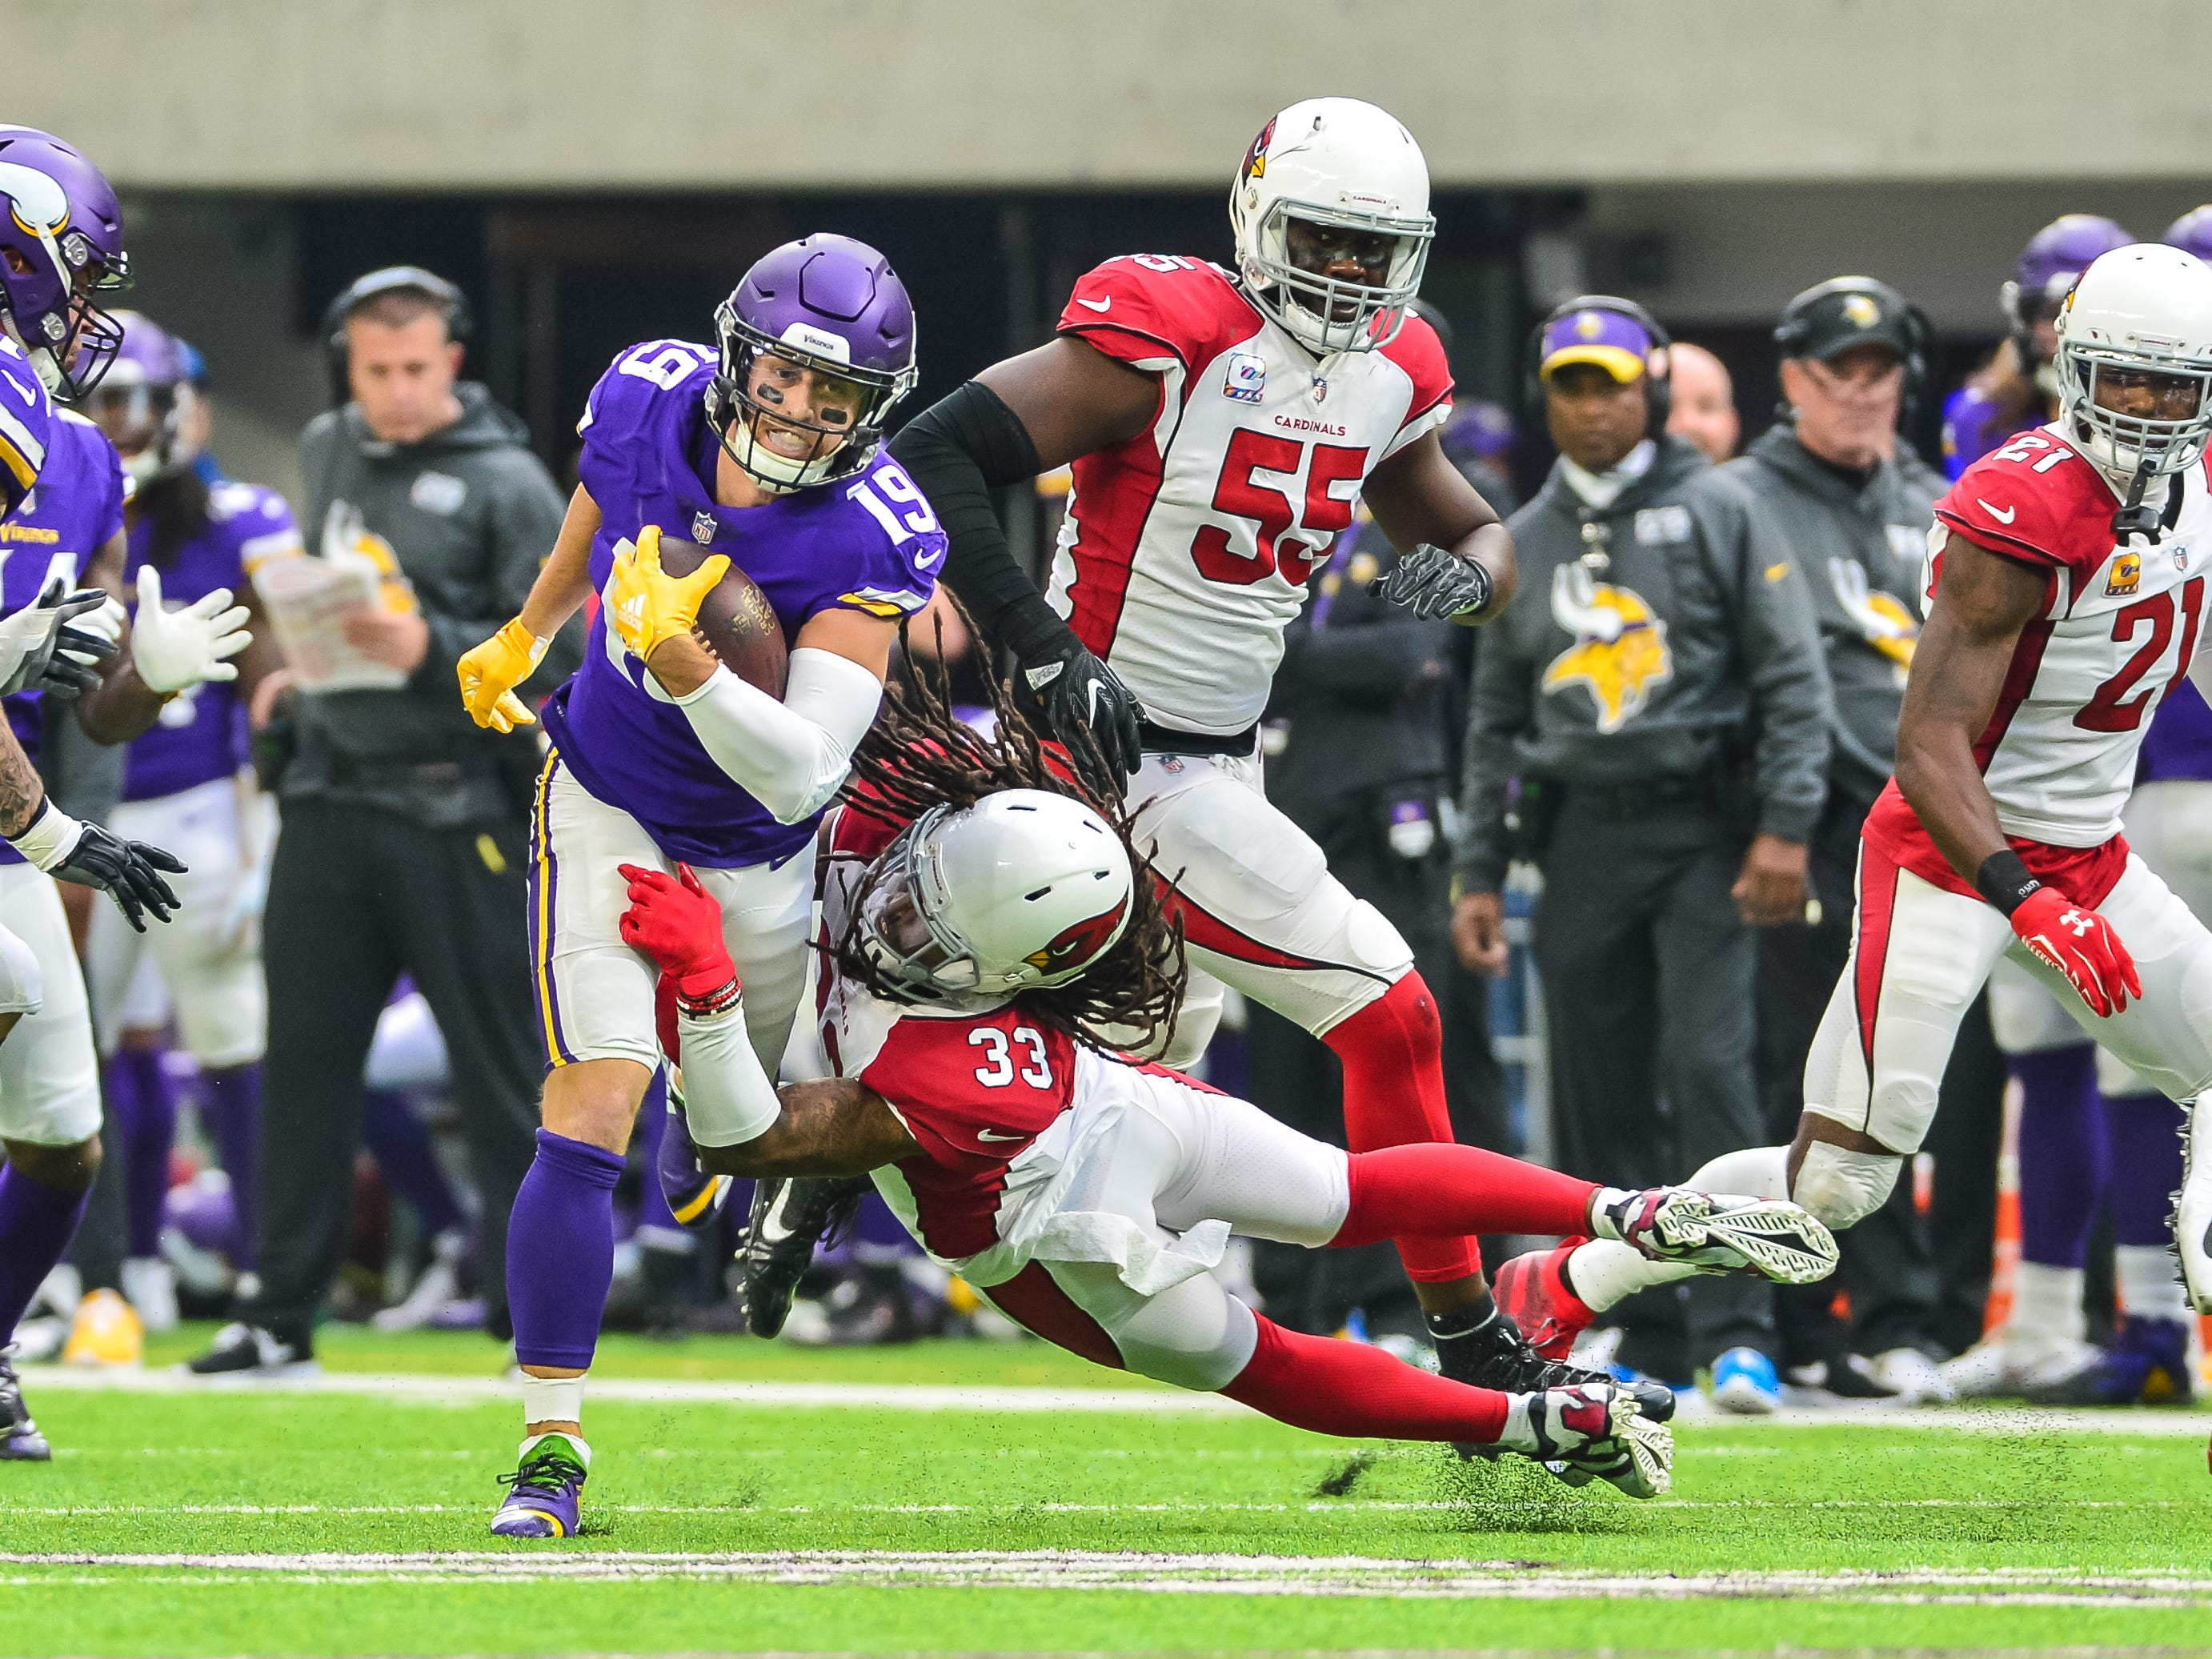 Minnesota Vikings wide receiver Adam Thielen (19) is tackled by Arizona Cardinals defensive back Tre Boston (33) during the first quarter at U.S. Bank Stadium. Thielen recorded 11 receptions for 123 receiving yards and a touchdown on Sunday.